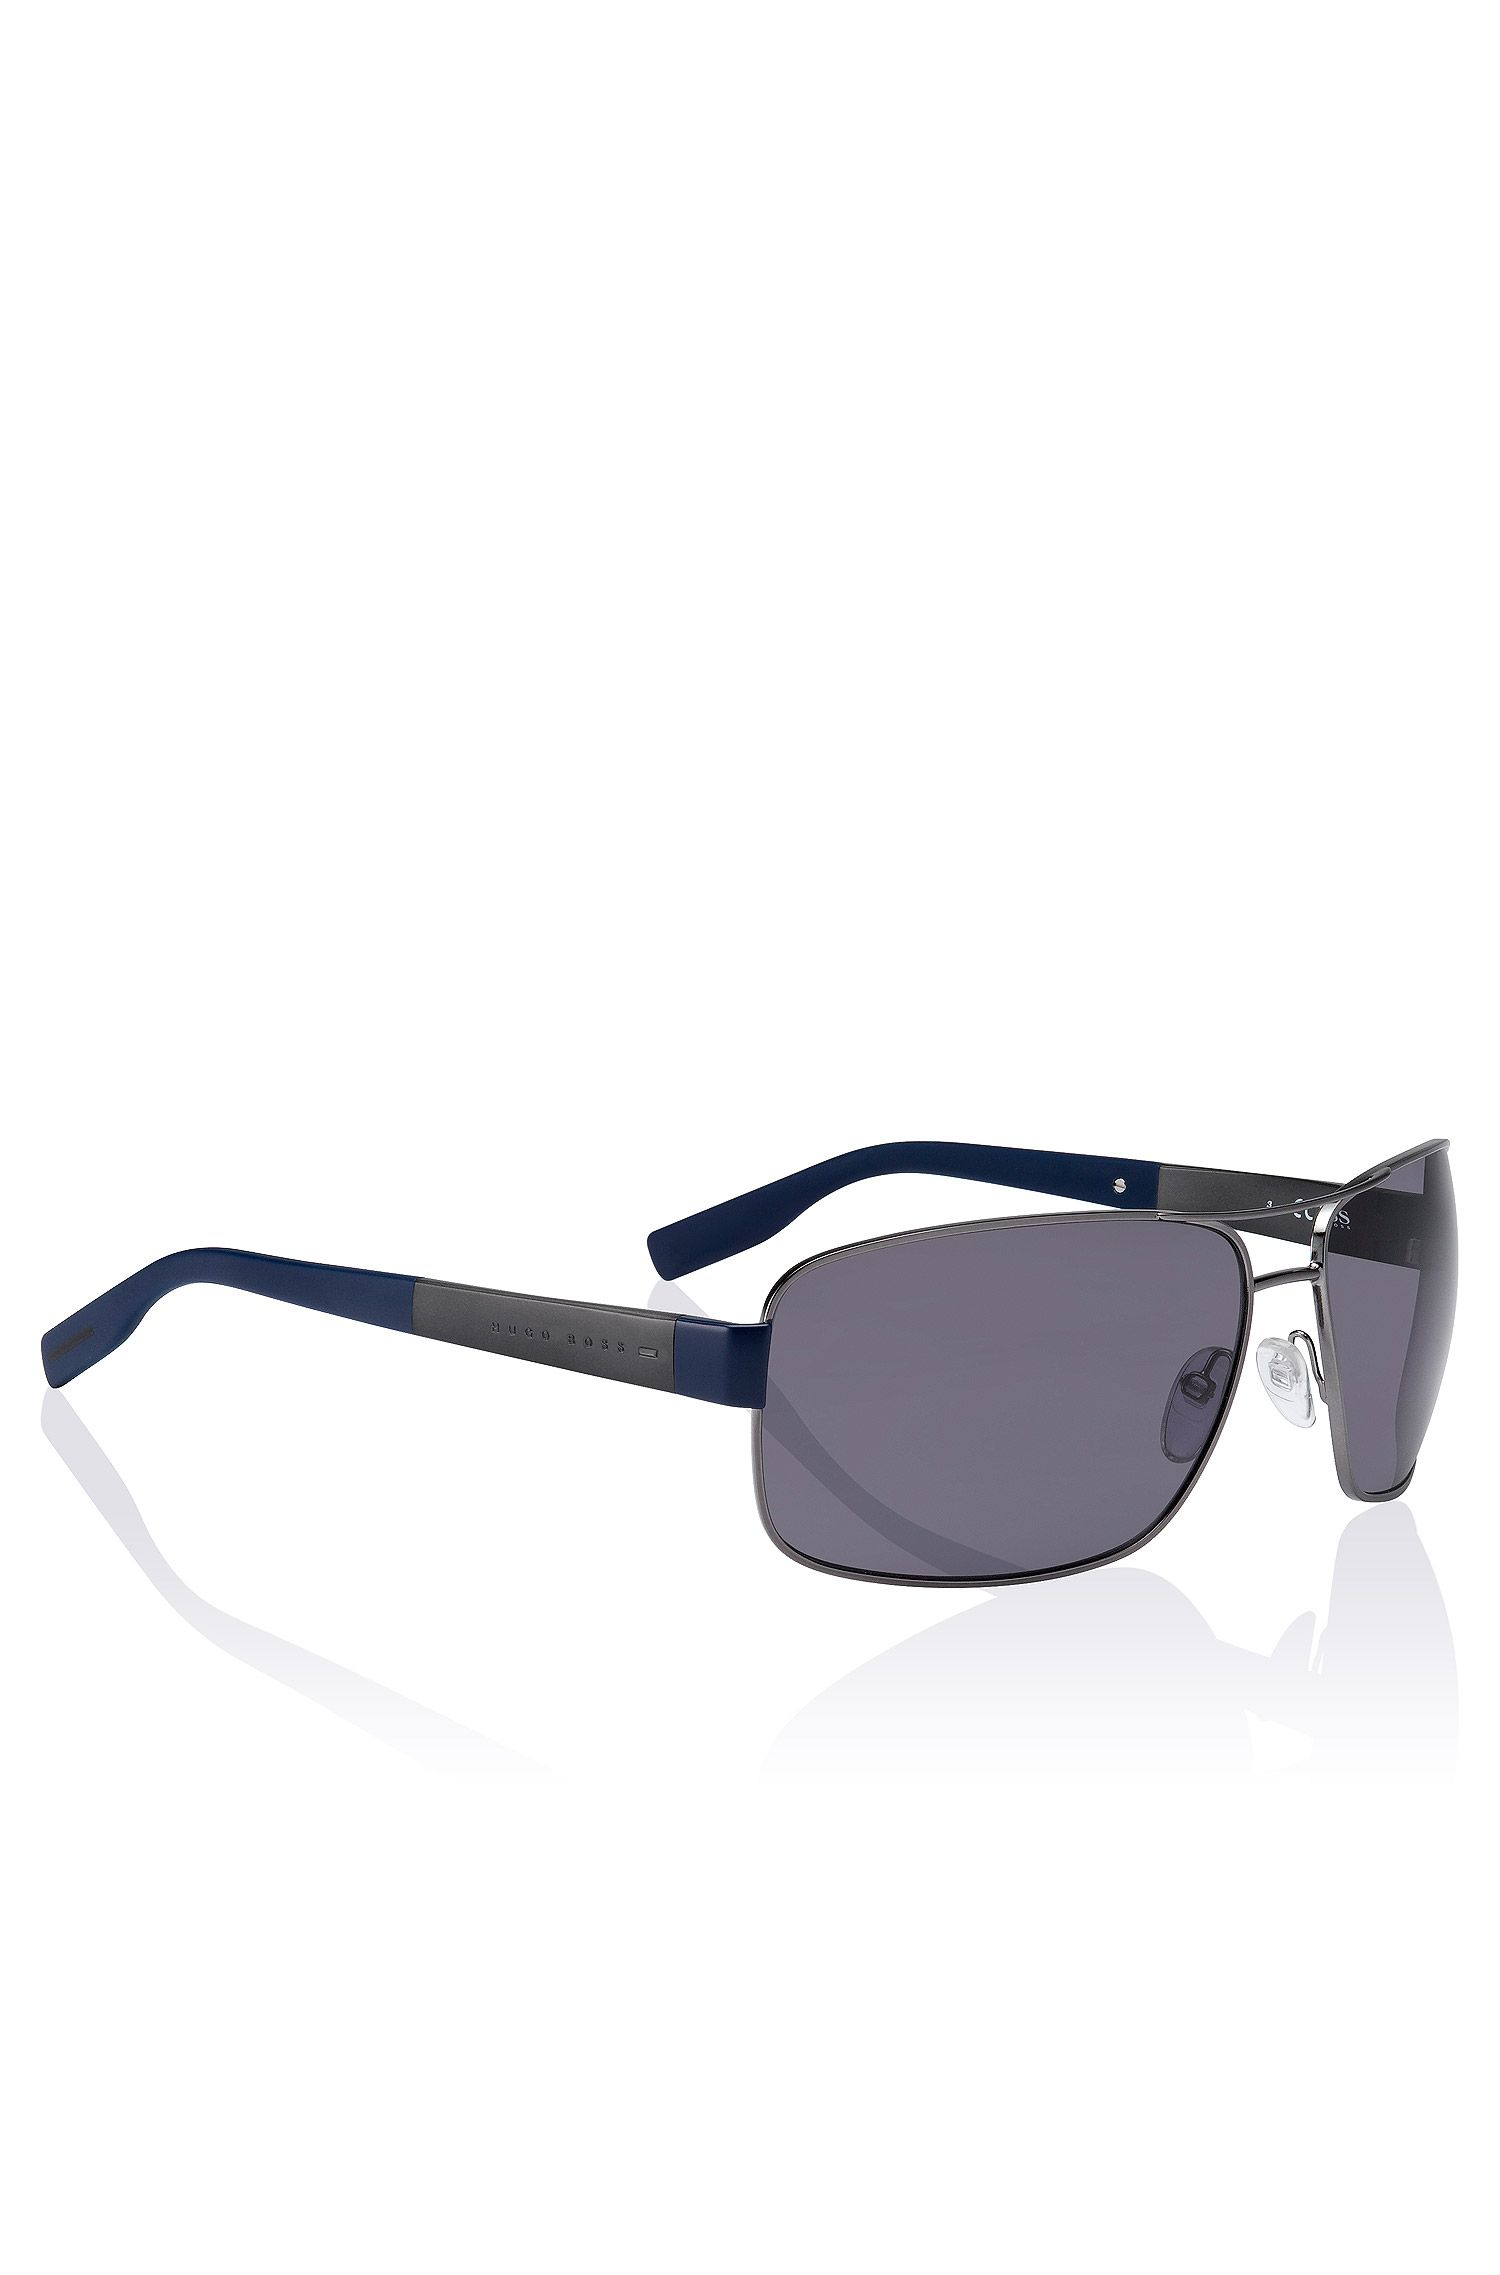 Sunglasses 'BOSS 0521/S'